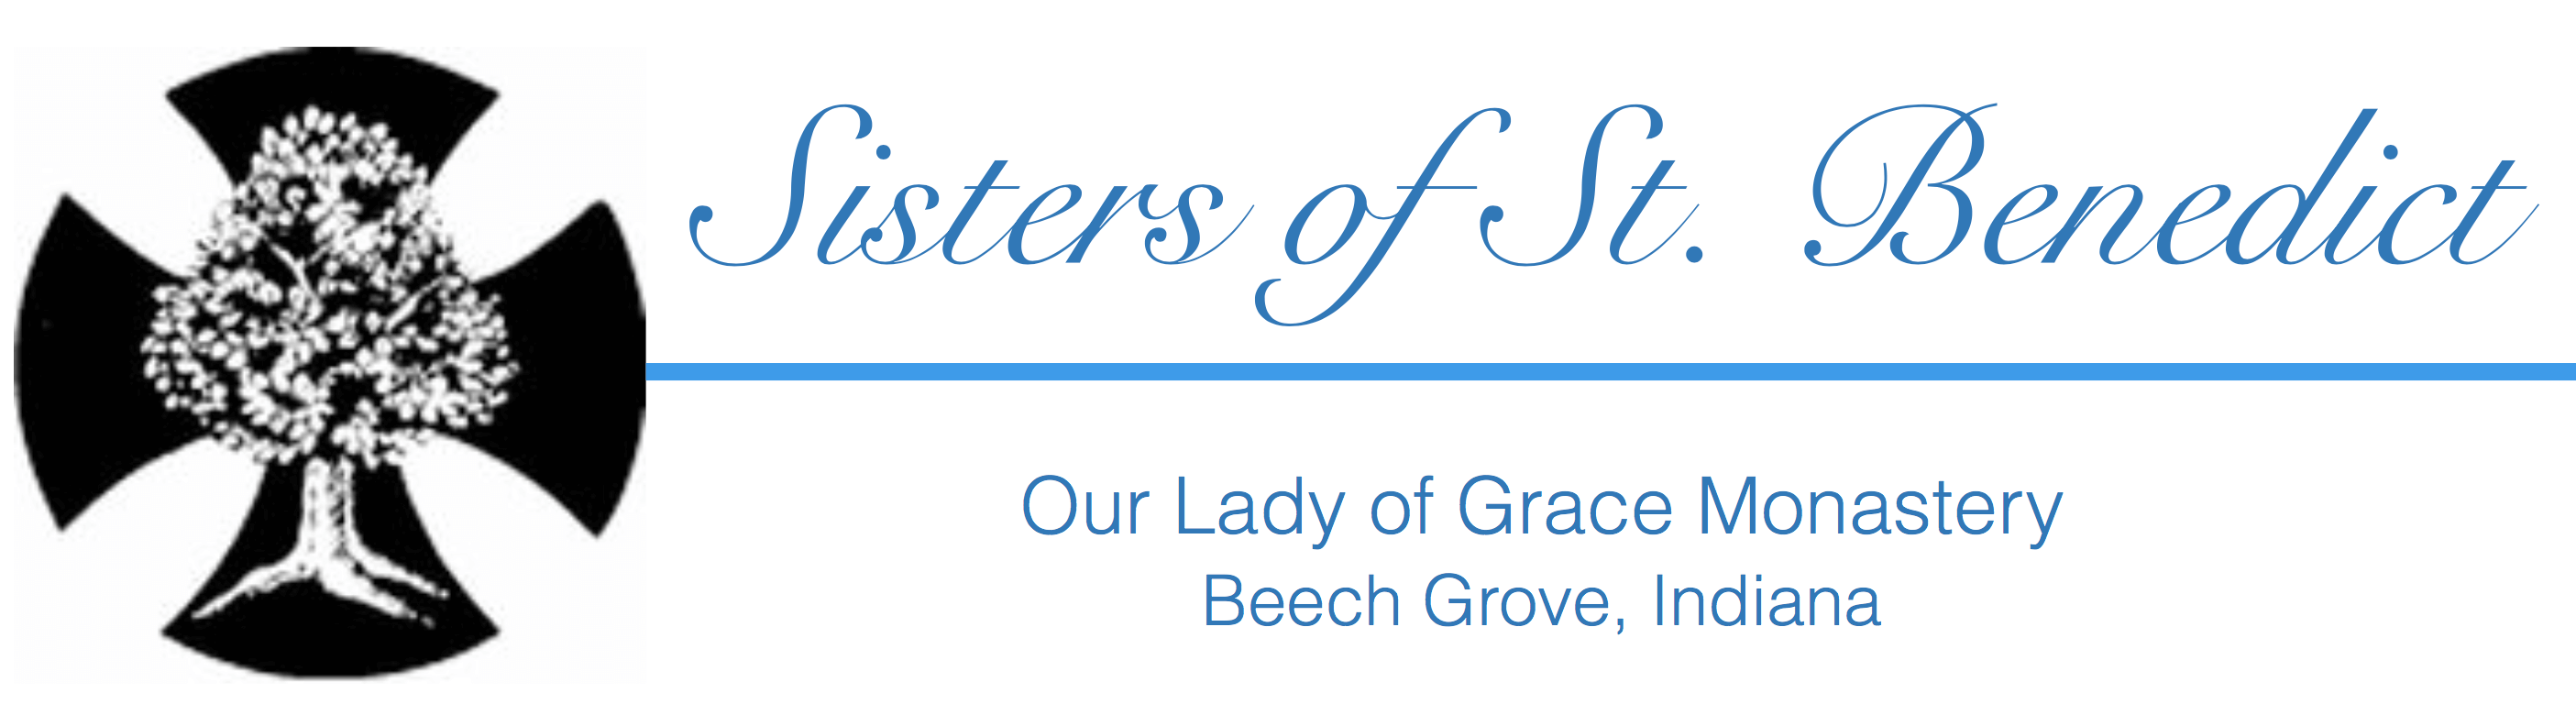 Sisters of St. Benedict Logo